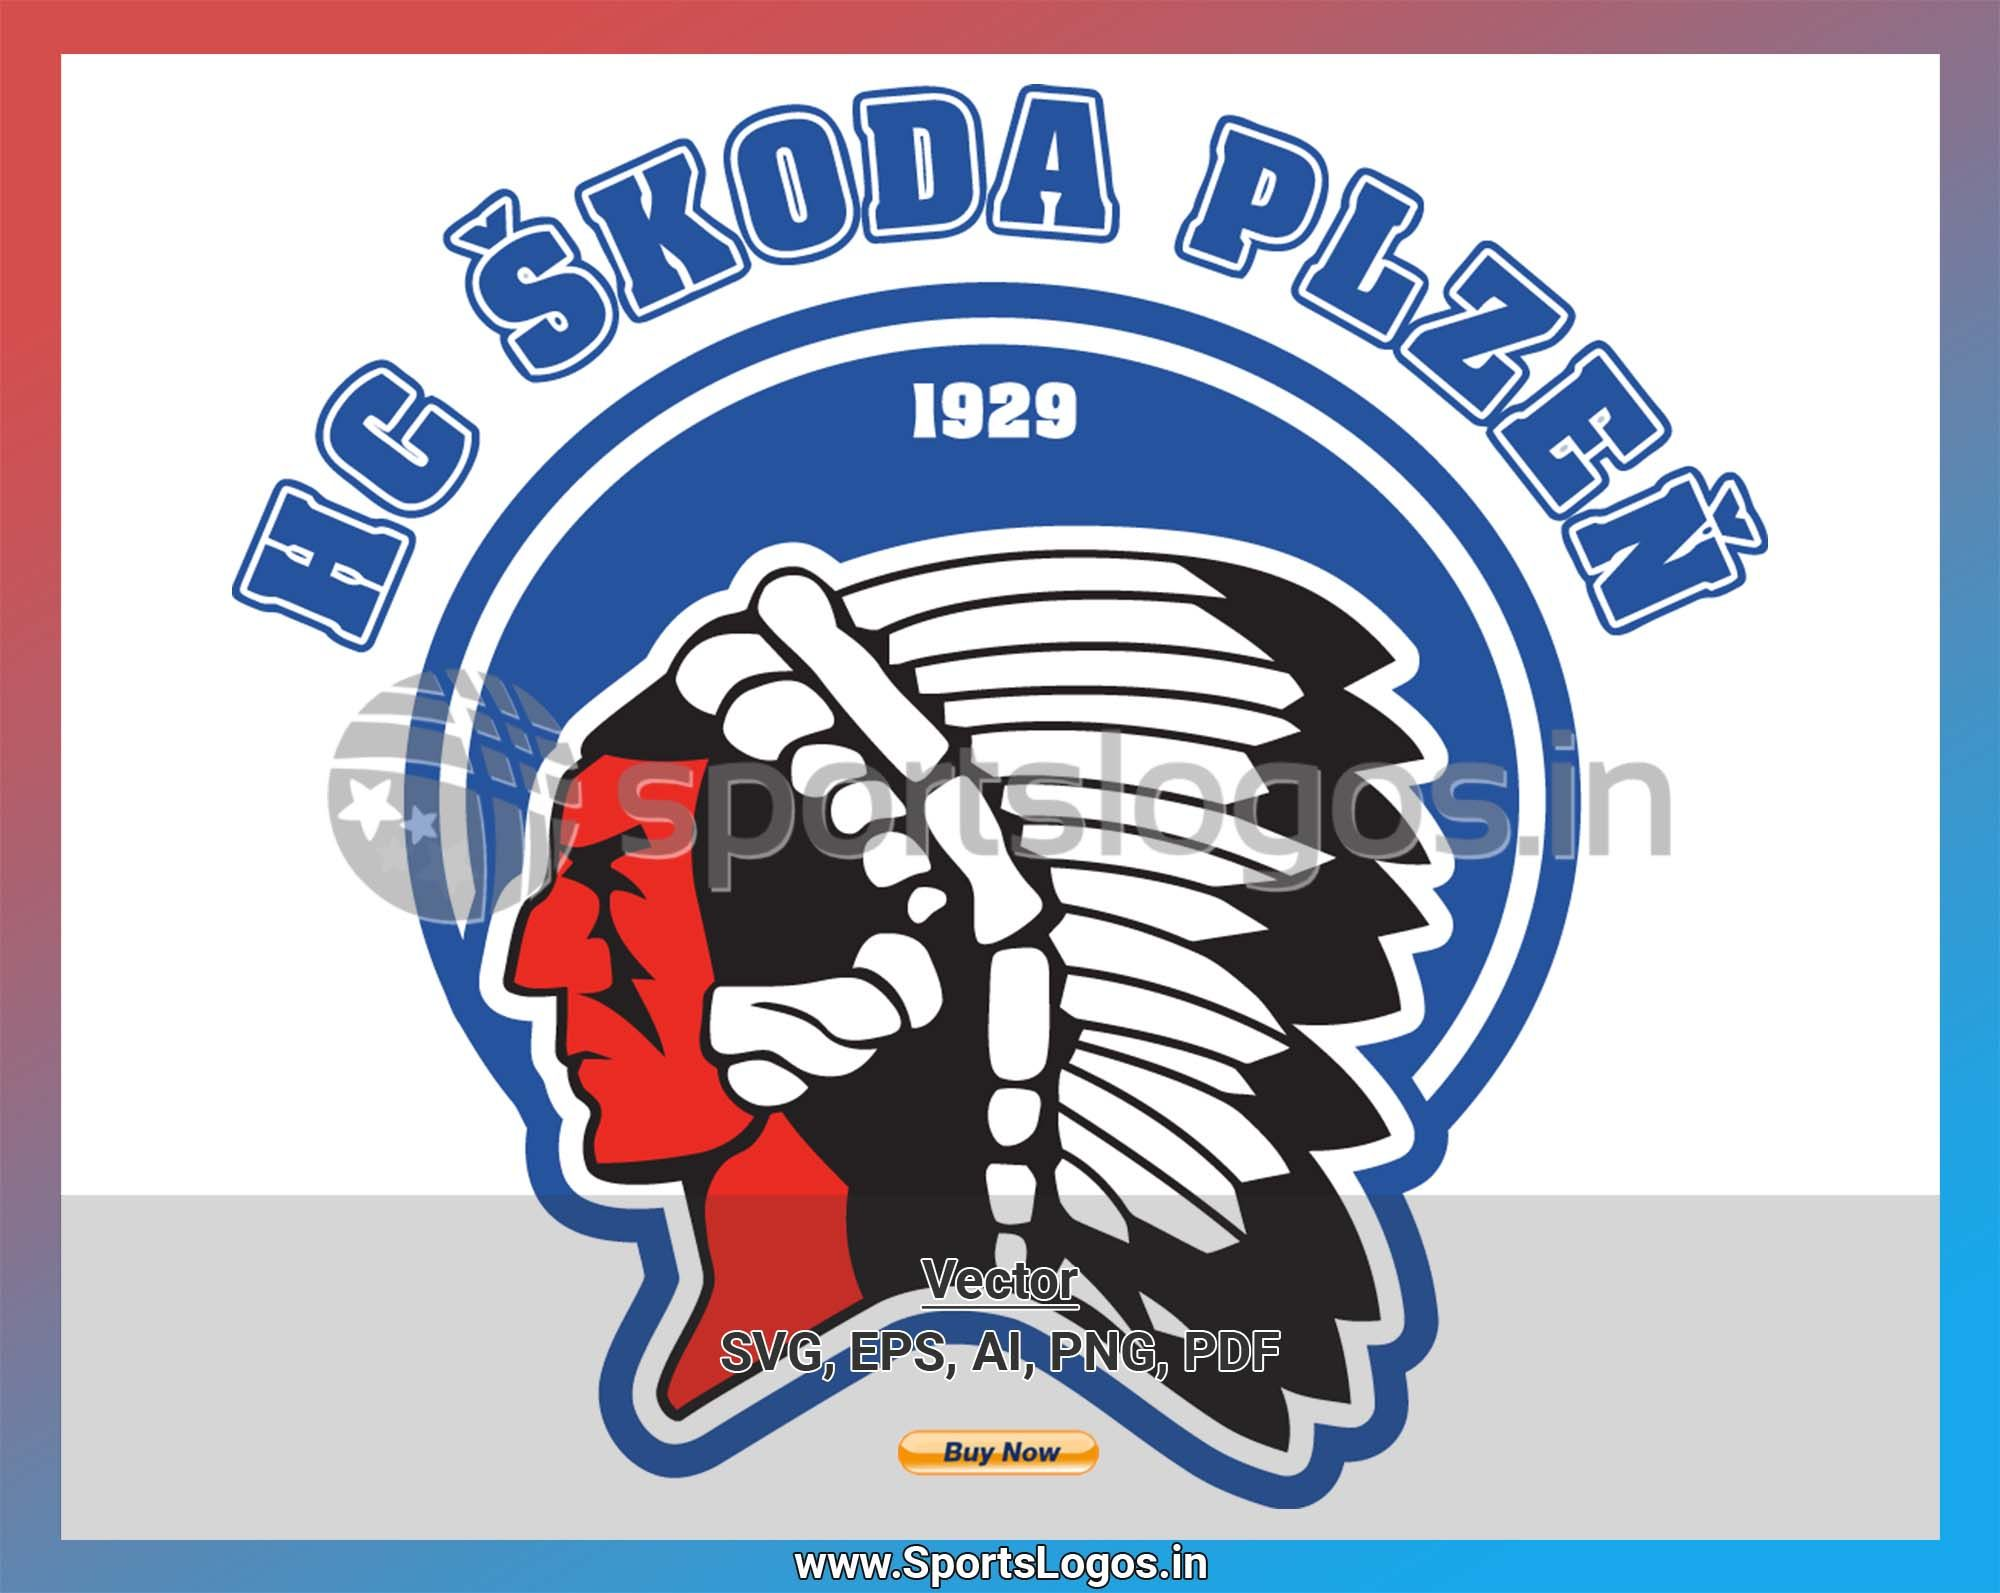 Hc Skoda Plzen Hockey Sports Vector Svg Logo In 5 Formats Spln001799 Sports Logos Embroidery Vector For Nfl Nba Nhl Mlb Milb And More Embroidery Logo Sport Hockey American Logo